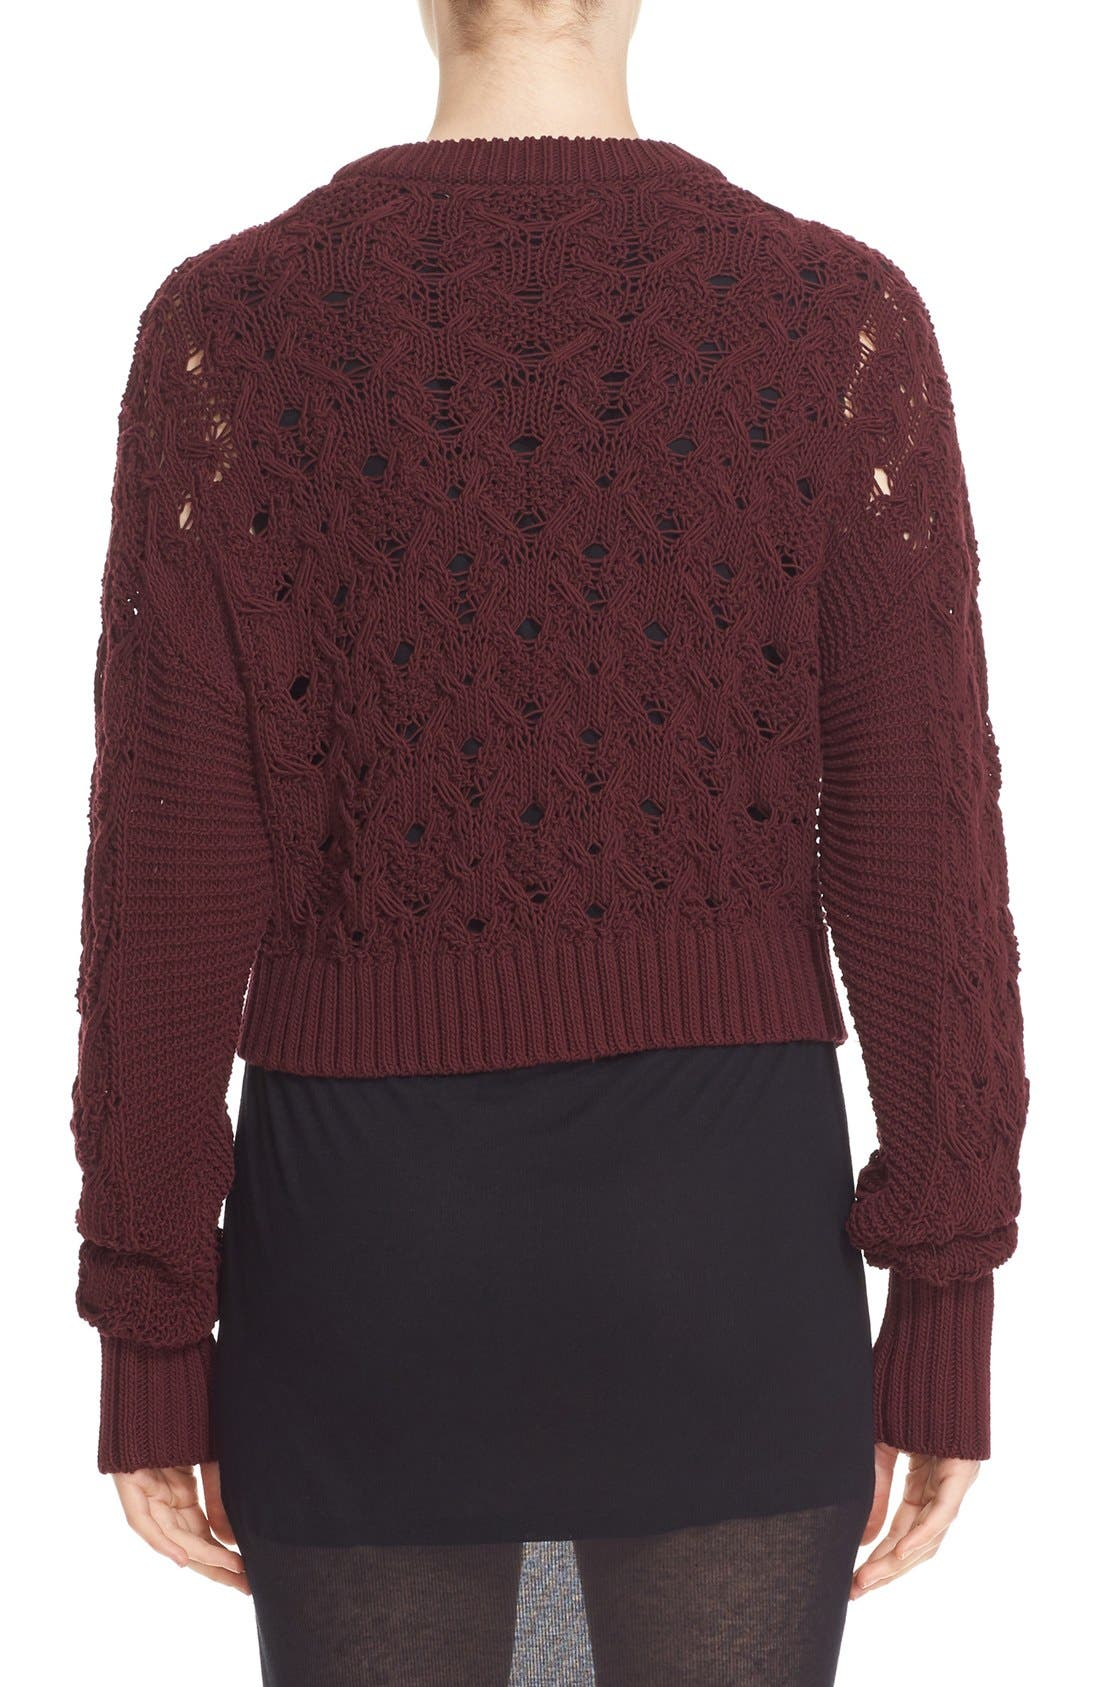 Alternate Image 3  - Public School Cotton Blend Cable Knit Sweater